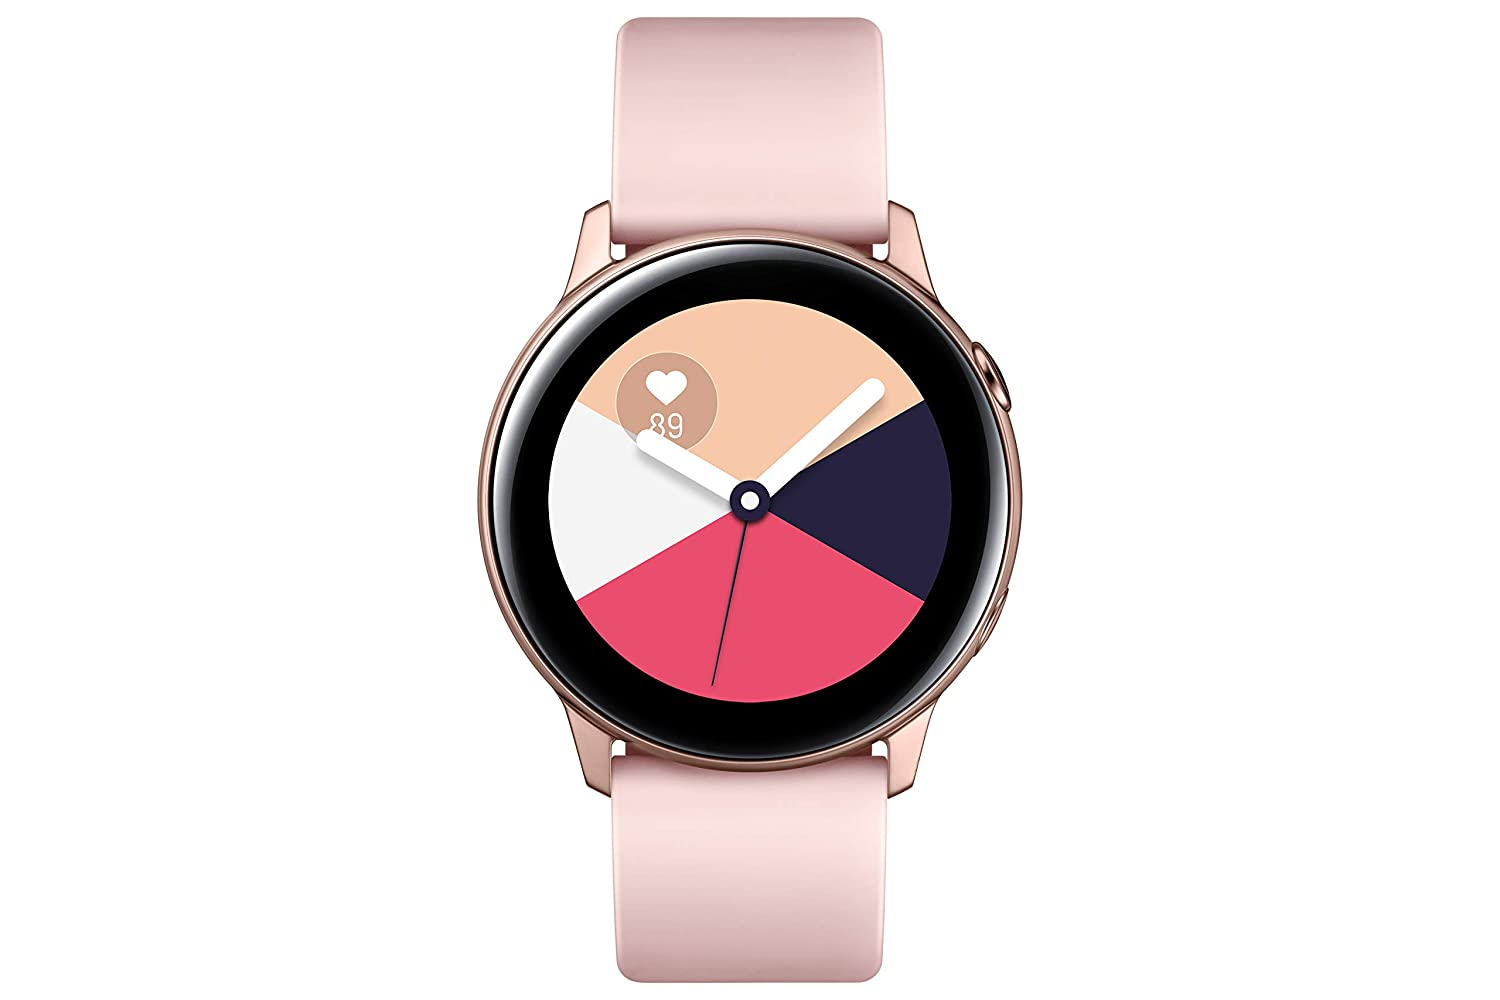 Samsung Electronics Galaxy Watch Active (40mm) Rose Gold - SM-R500NZDAXAR